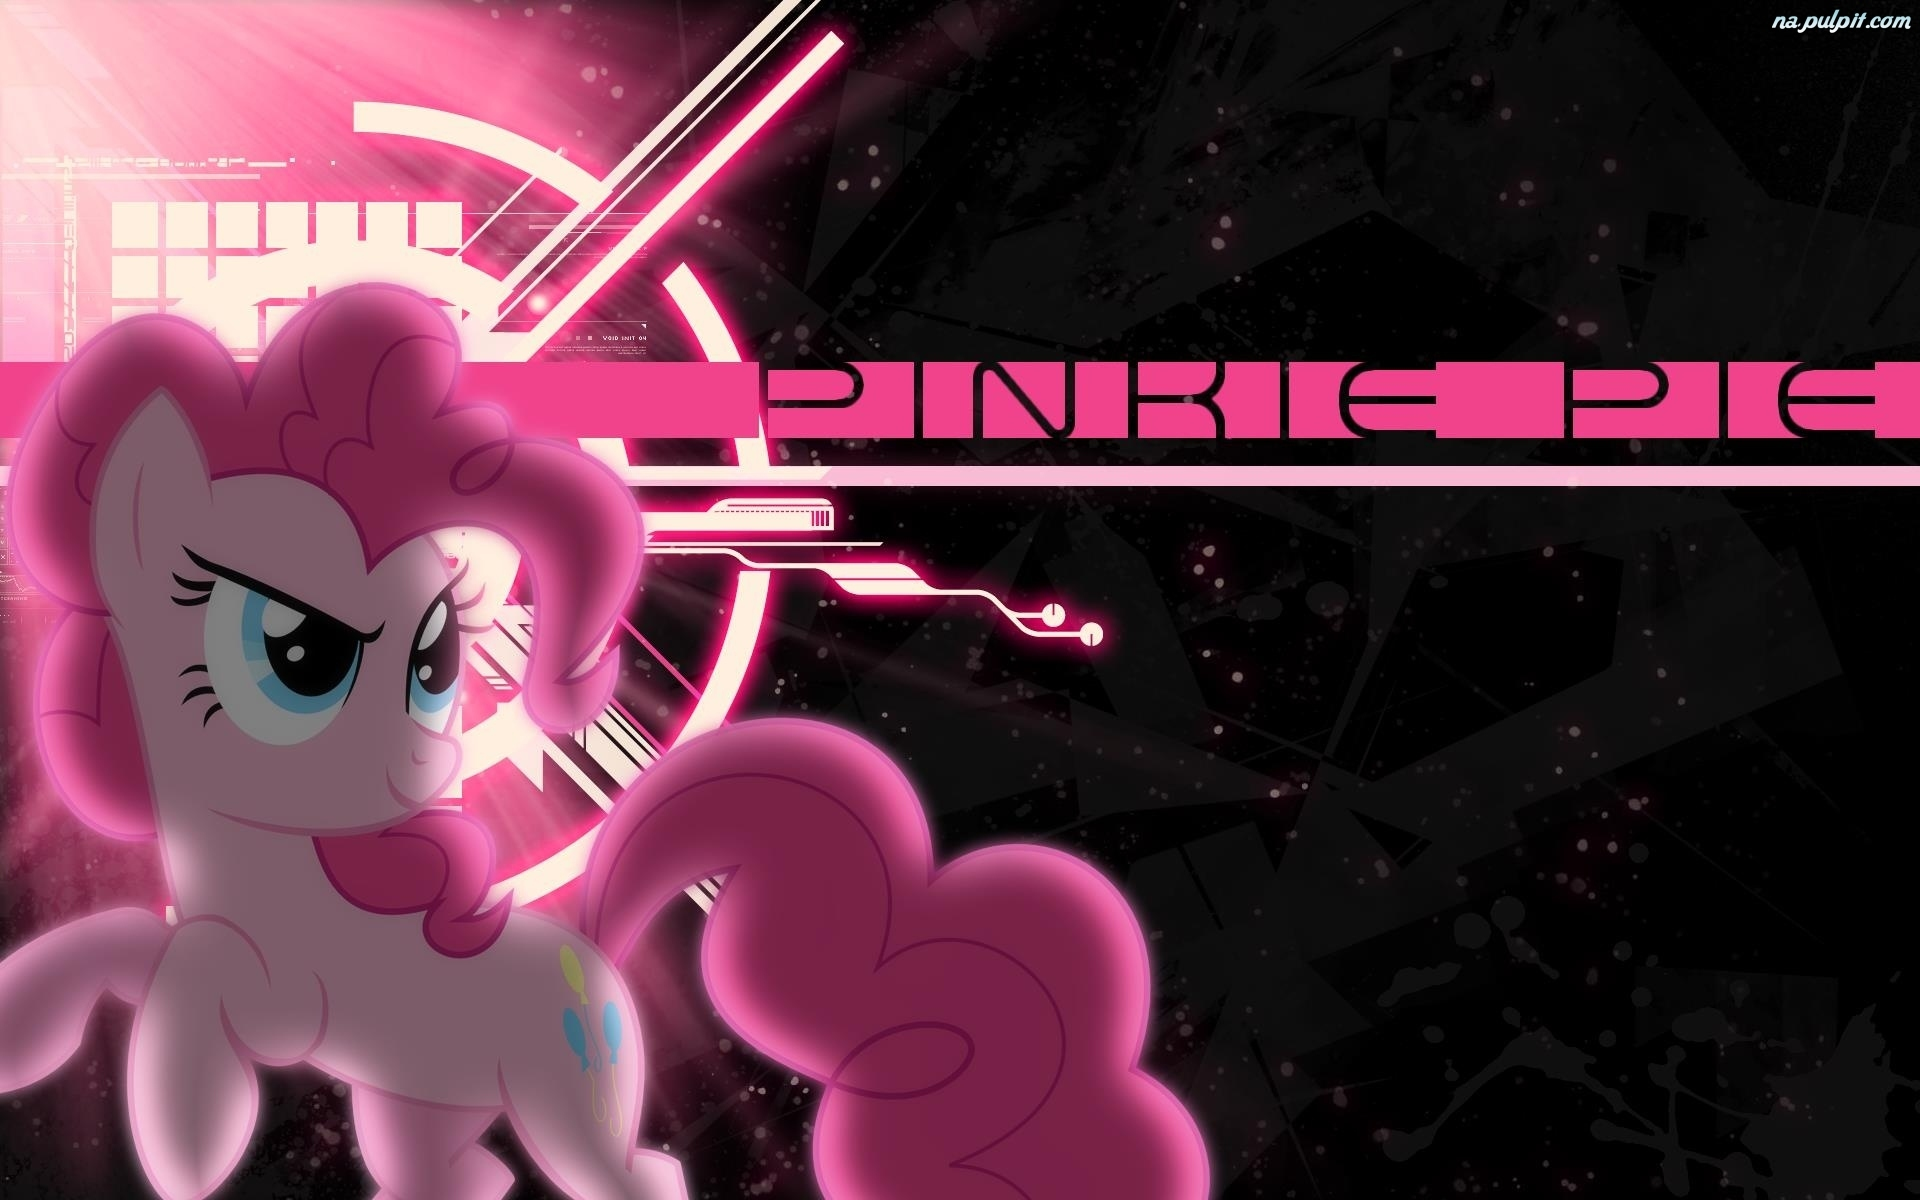 My Little Pony Przyjaźń To Magia, Pinkie Pie